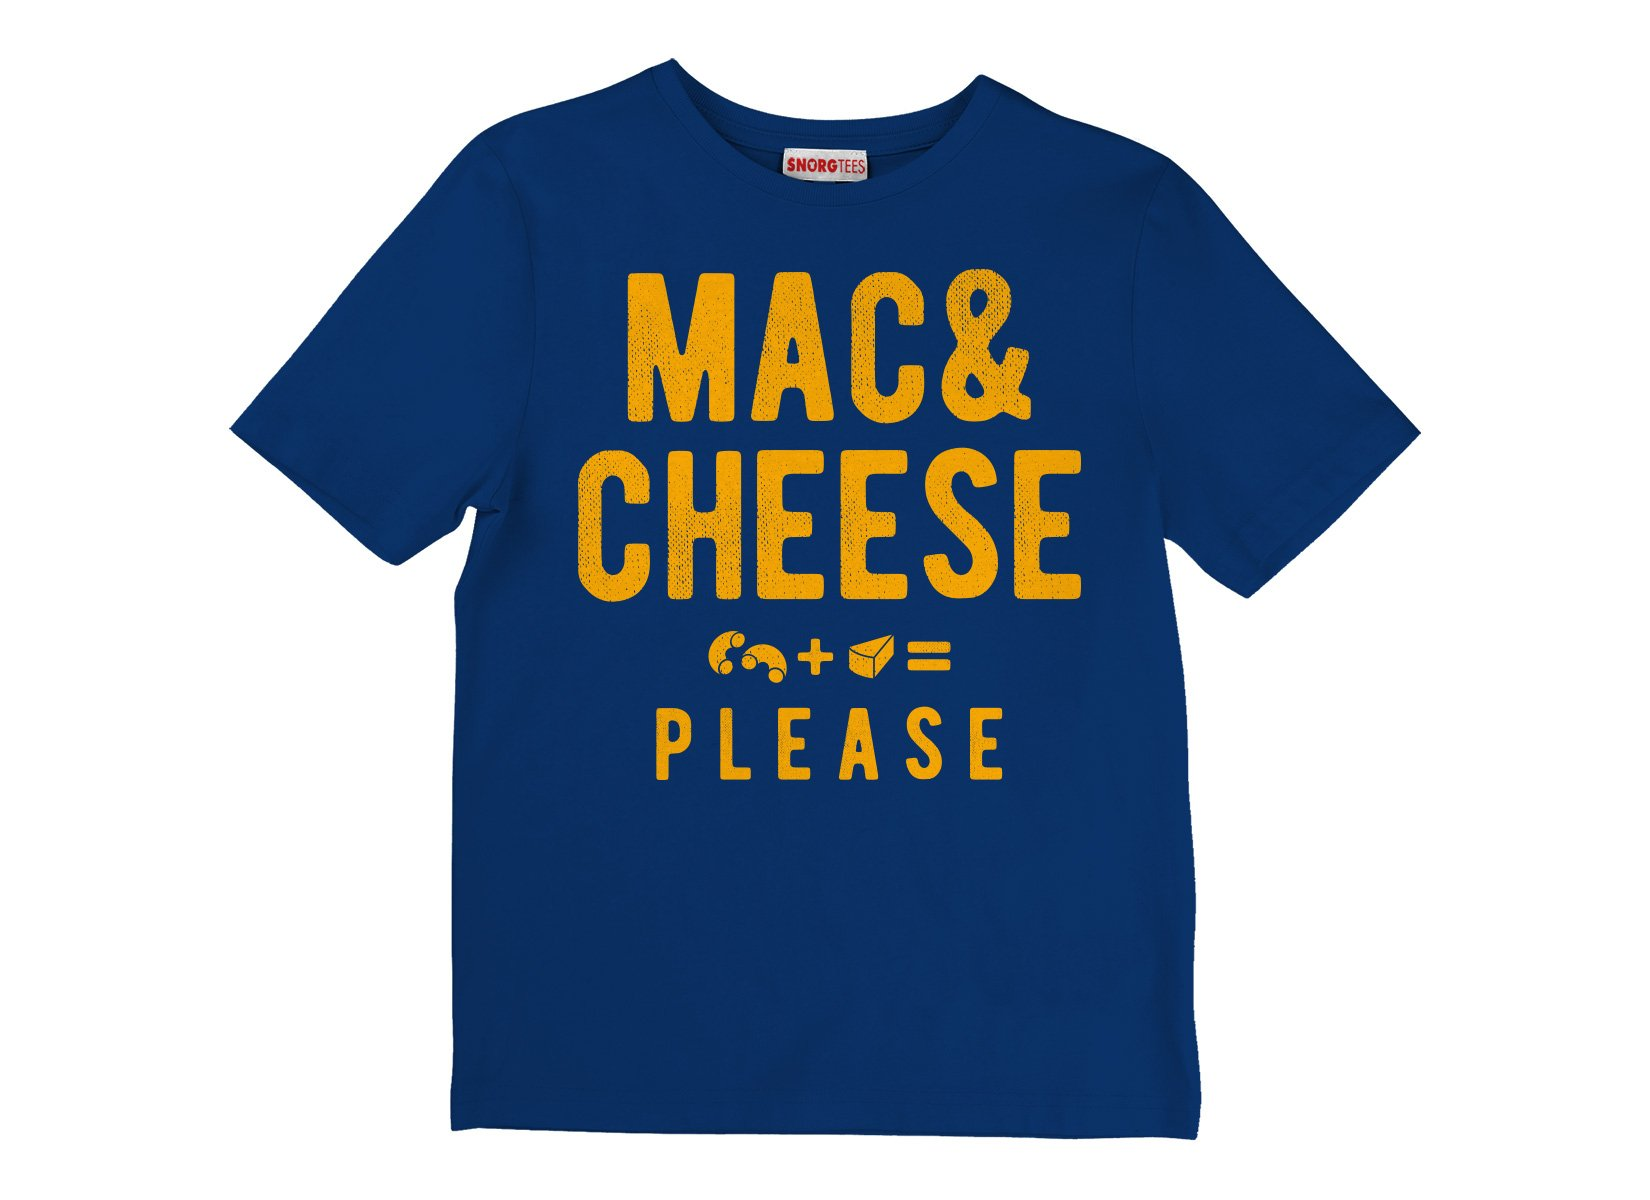 Mac And Cheese Please on Kids T-Shirt